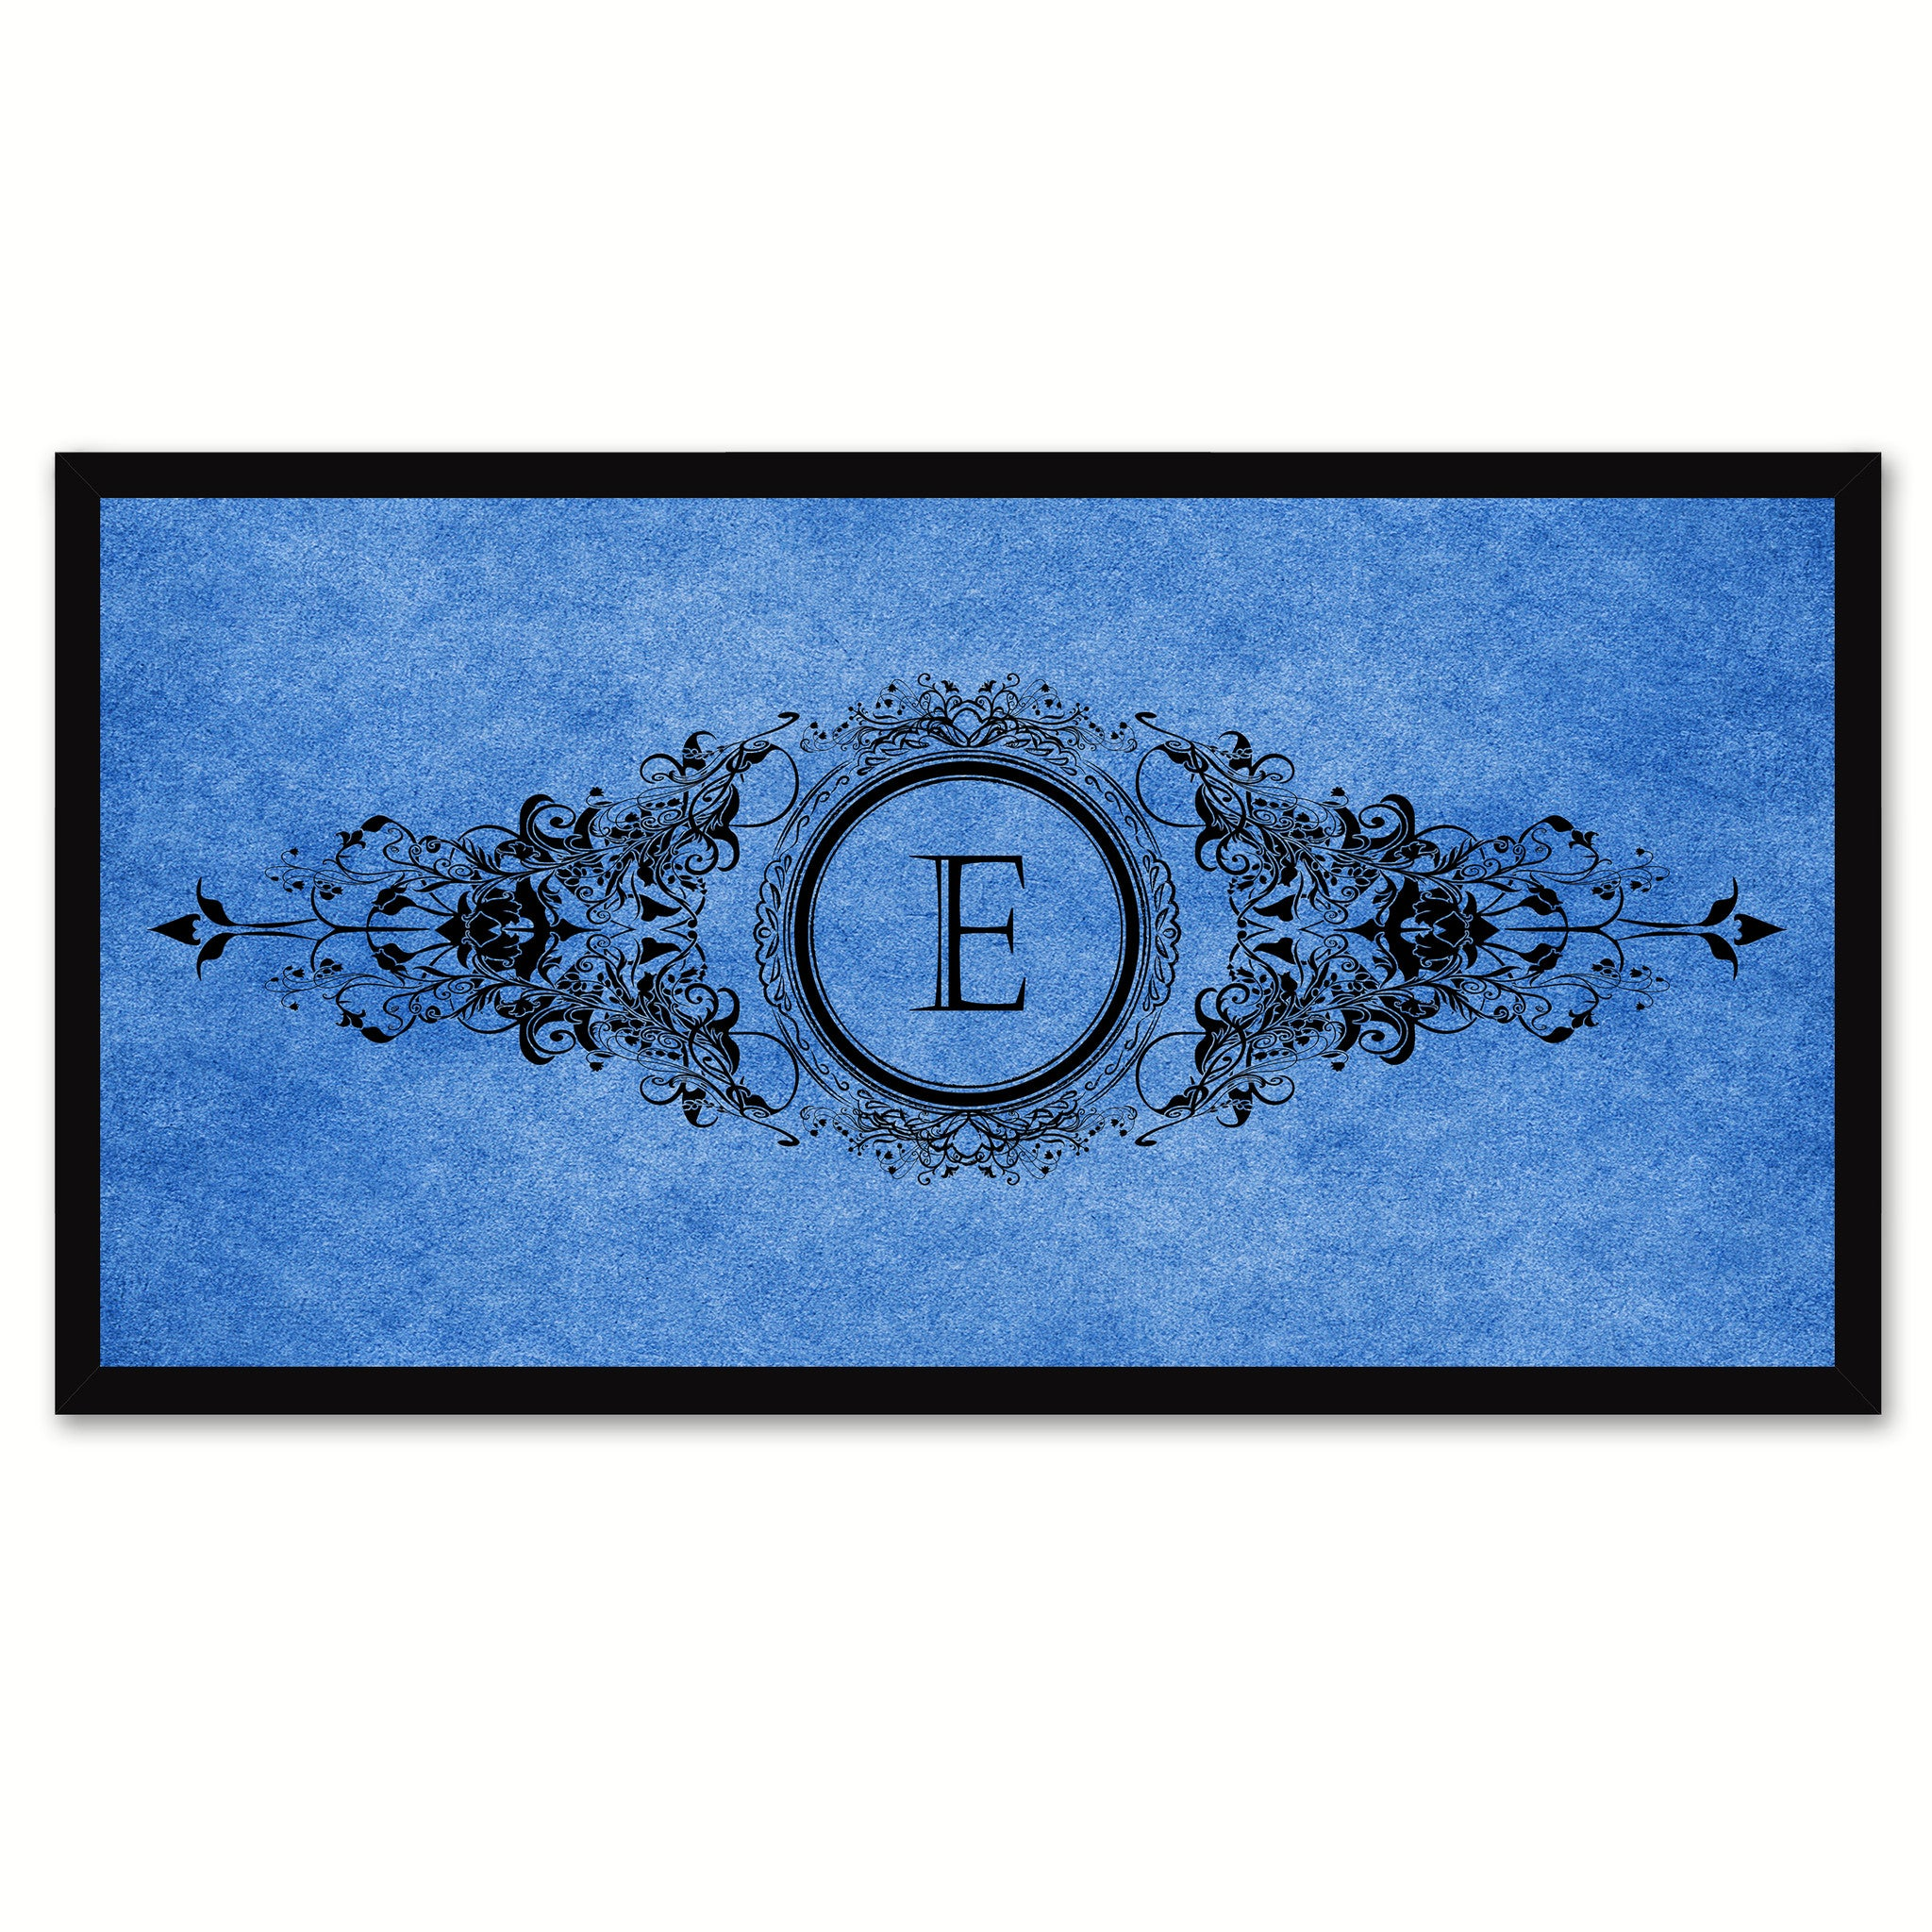 Alphabet Letter E Blue Canvas Print Black Frame Kids Bedroom Wall Décor Home Art